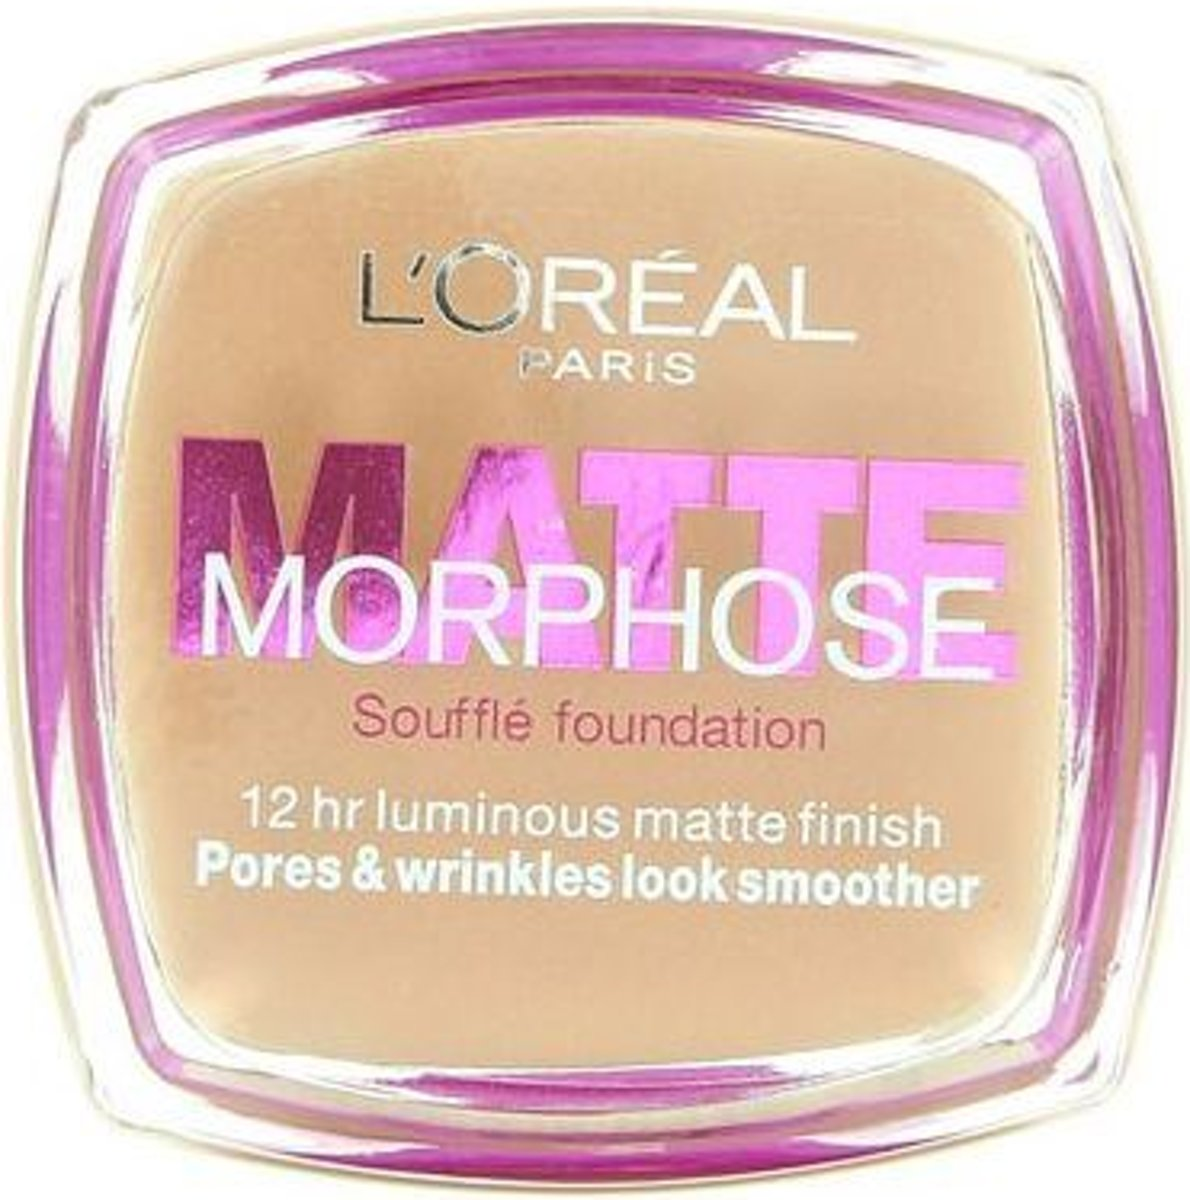 Loreal Paris Matte Morphose Foundation - Ivoire Dore 115